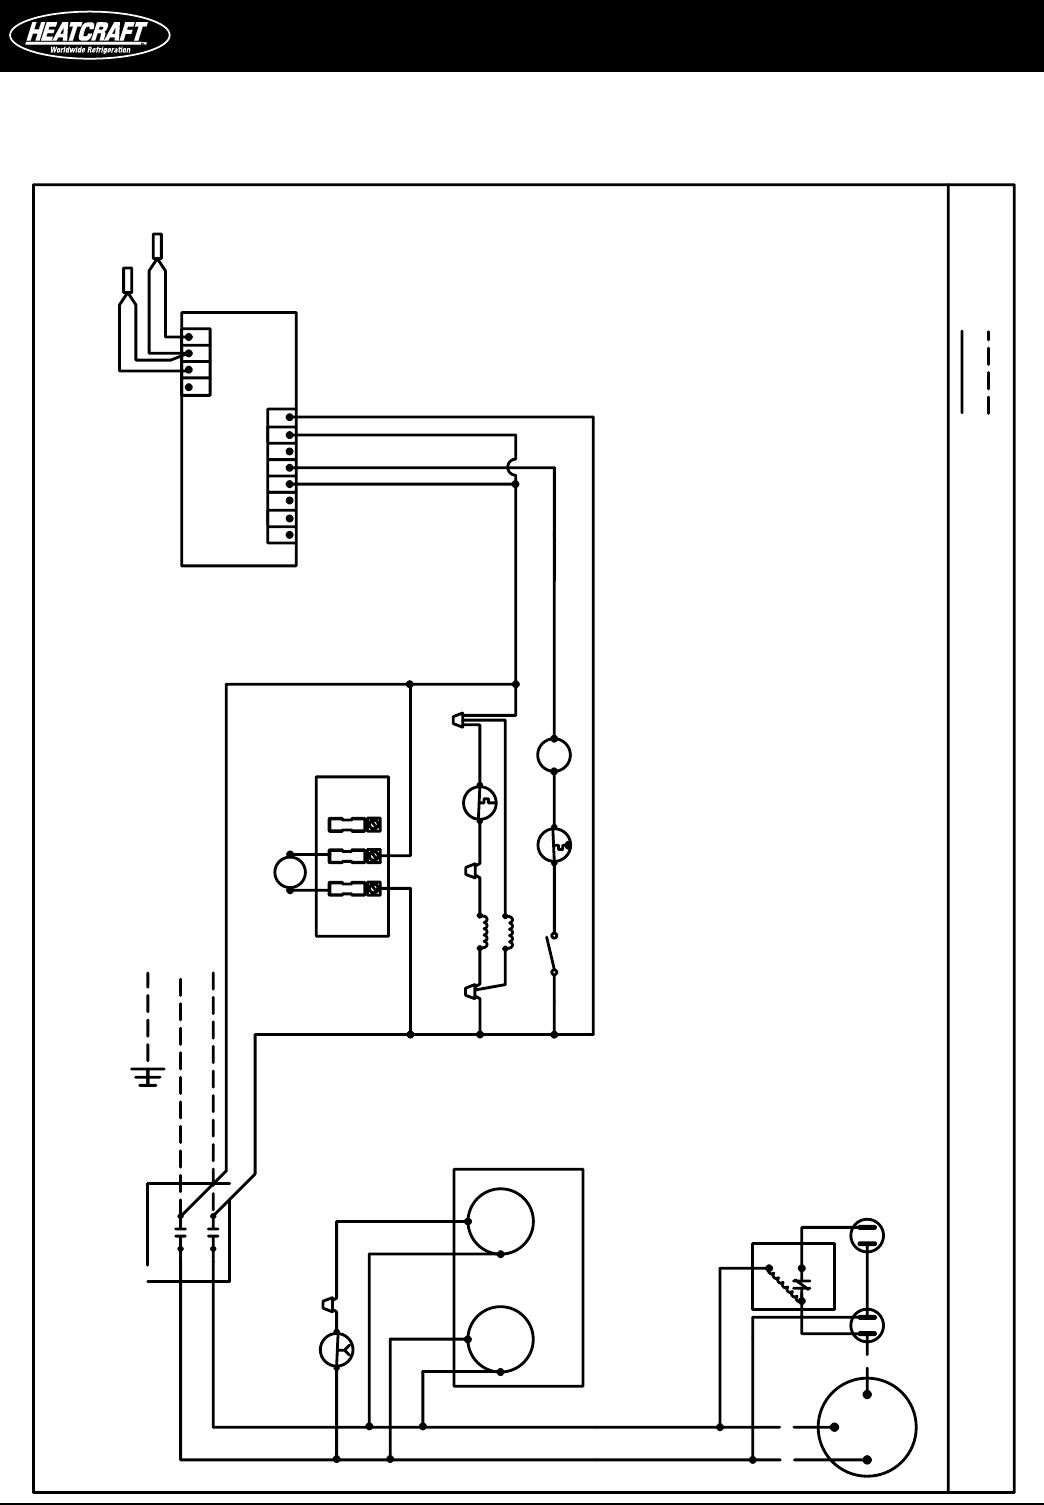 Wiring Pot Lights In Series Diagram Free Download Wiring Diagrams